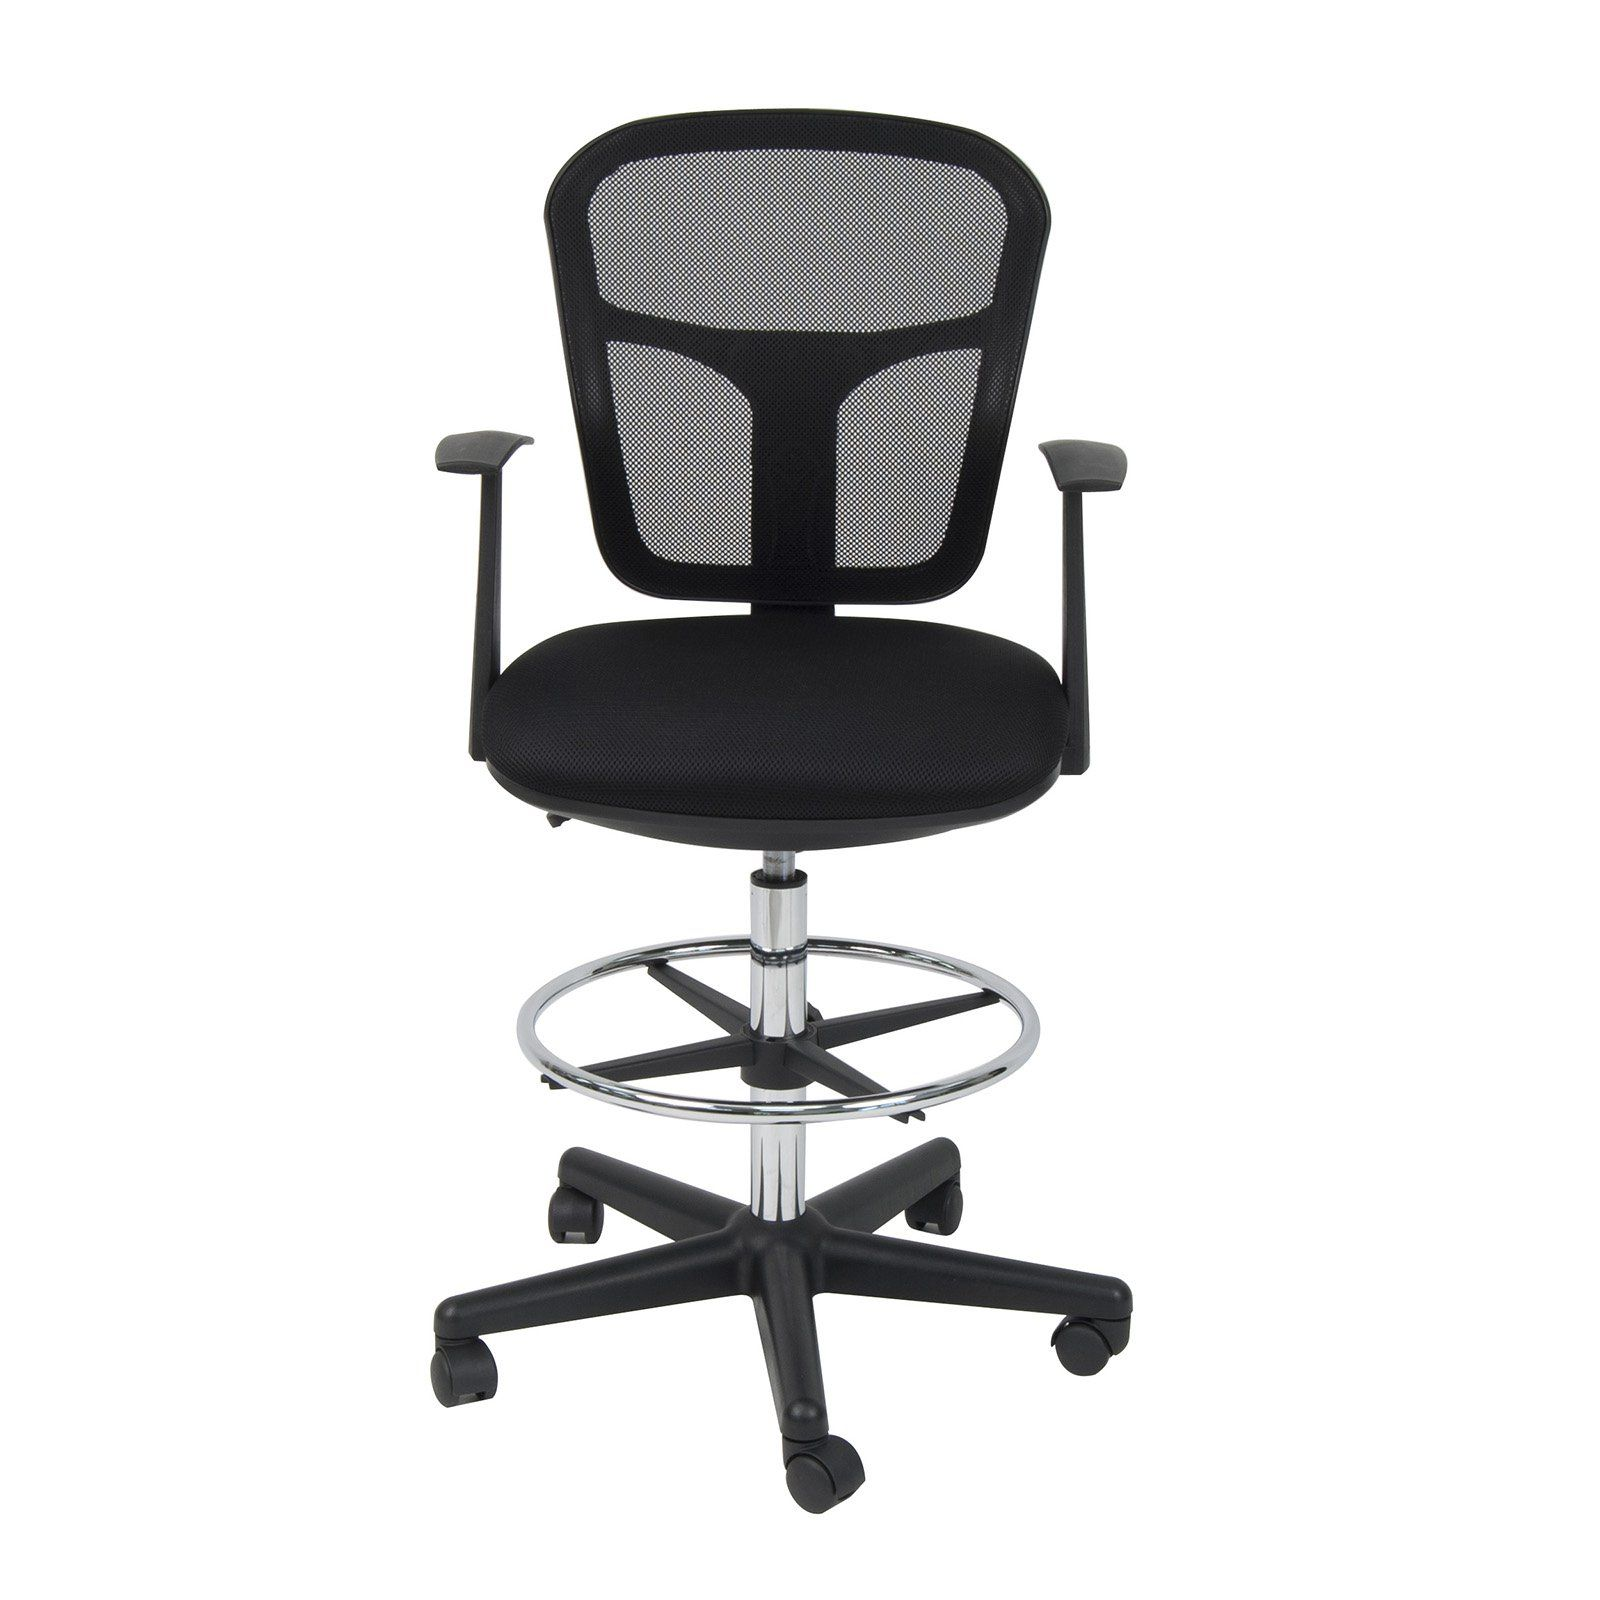 Office chair for drafting table - Studio Designs Riviera Drafting Chair The Studio Designs Riviera Drafting Chair Is A Versatile